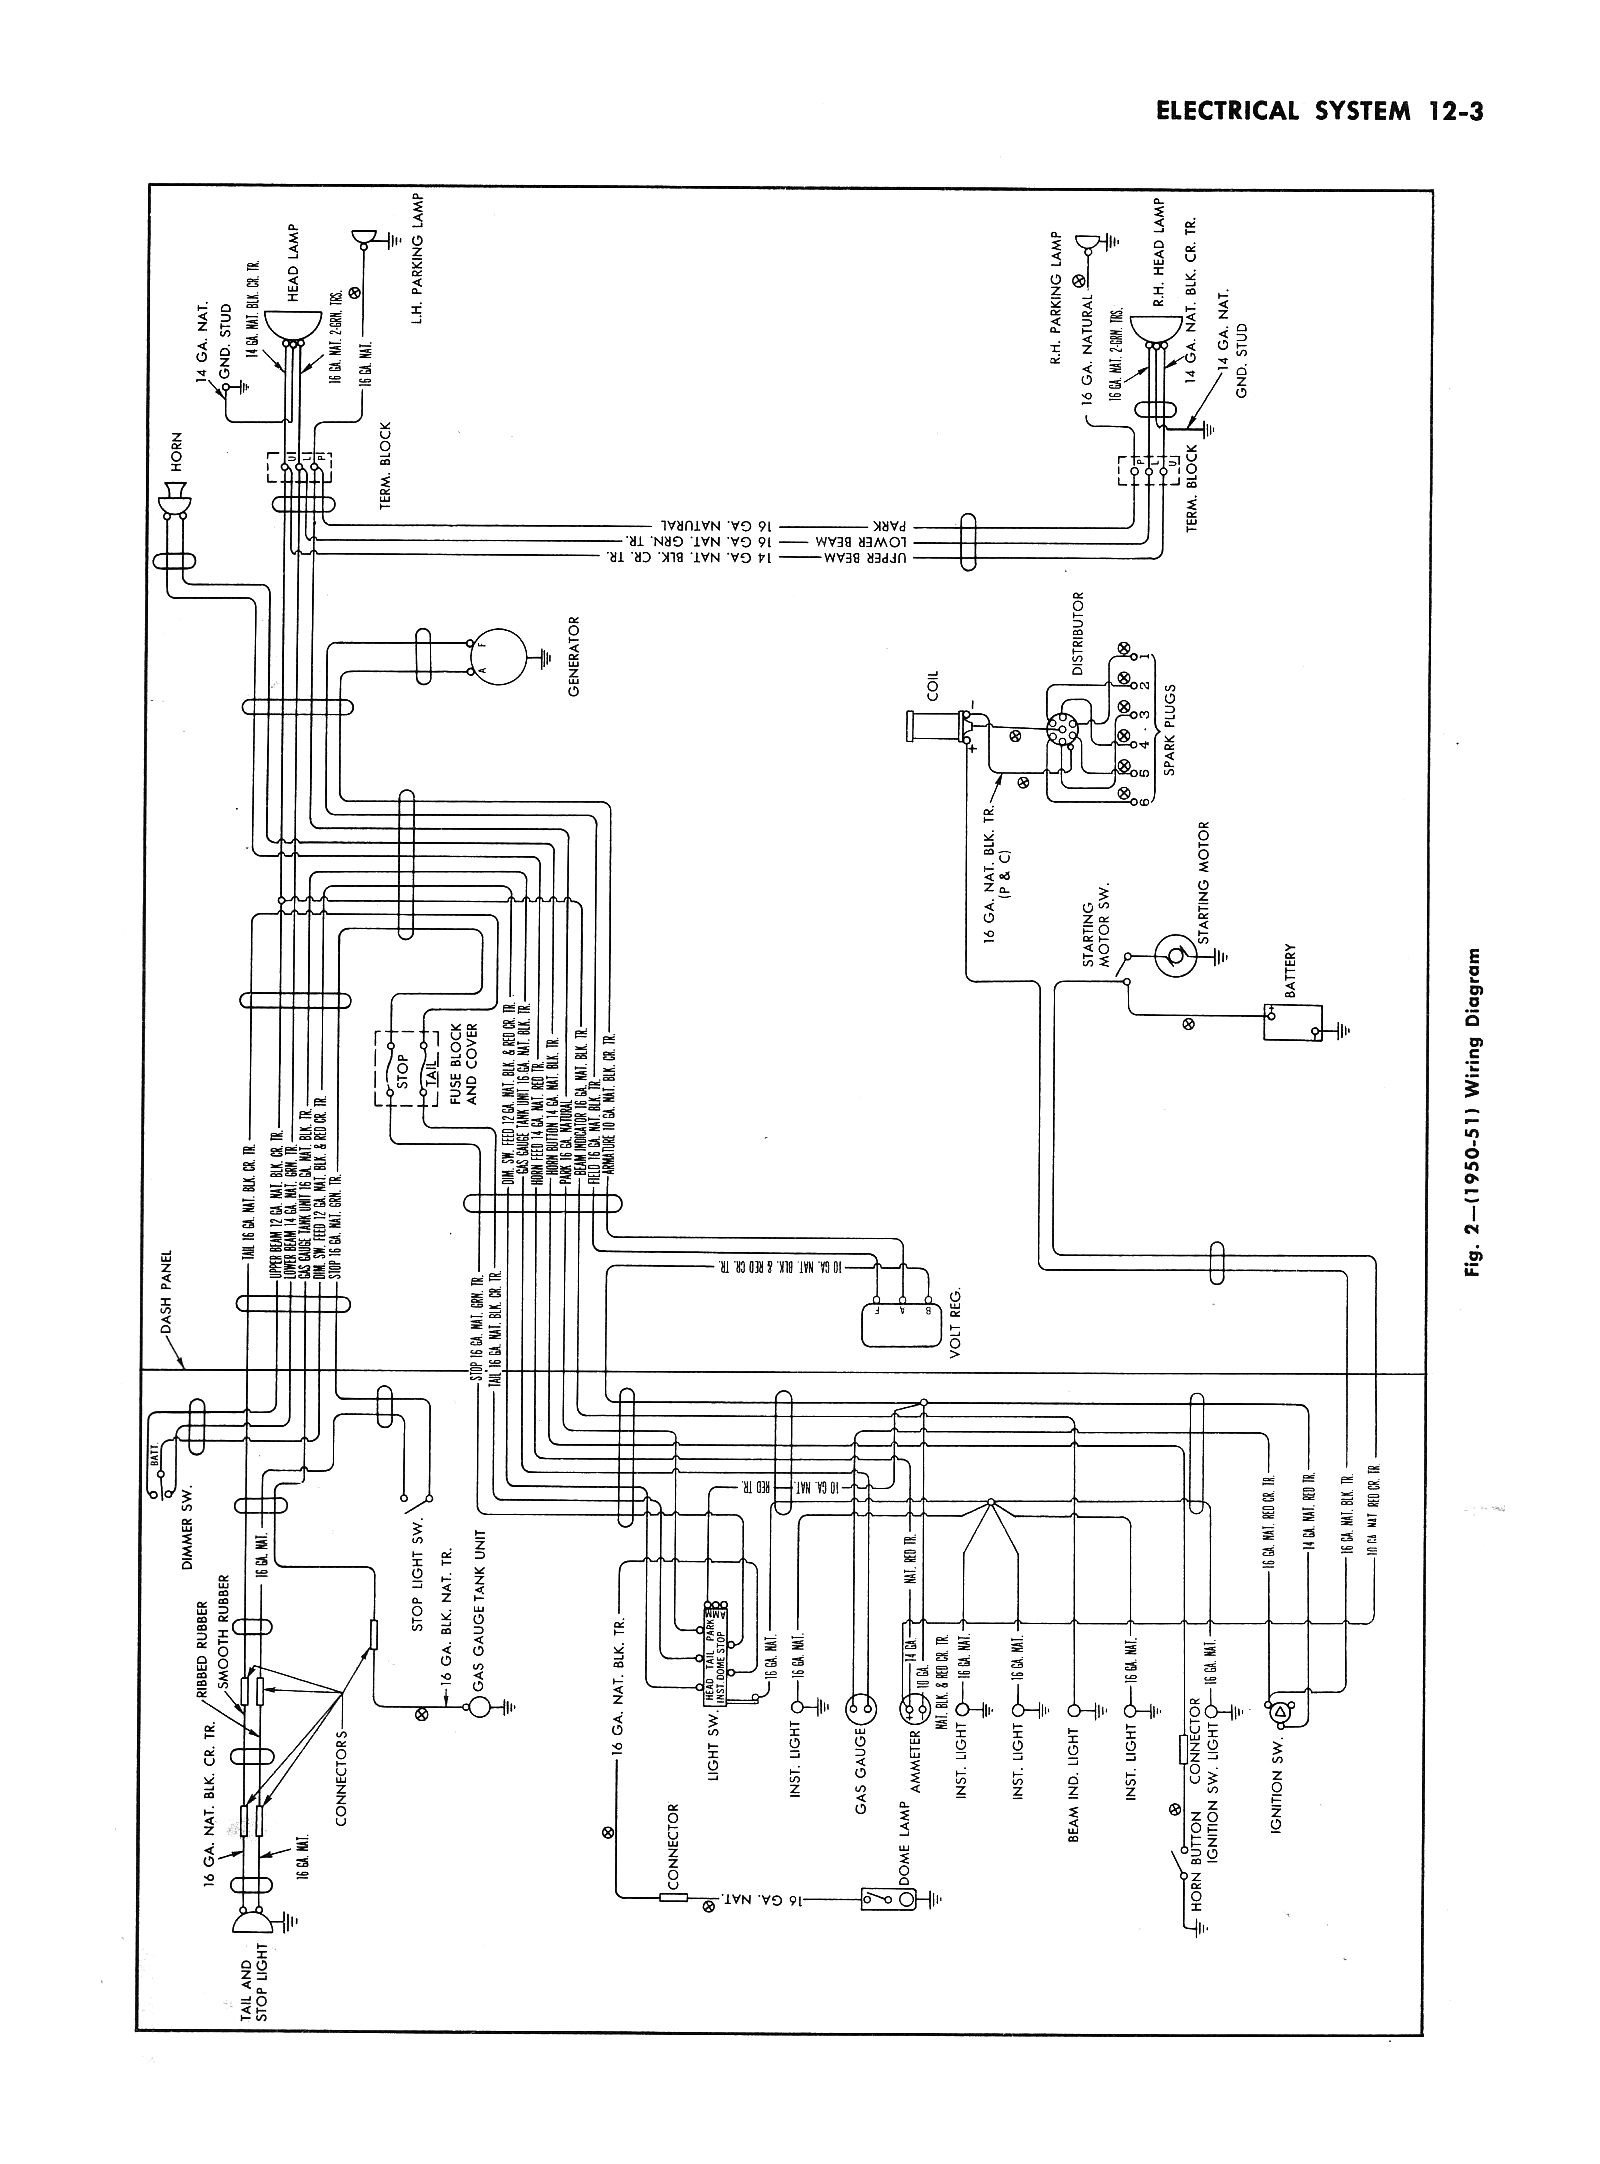 3 Wire Alternator Wiring Diagram 62 Impala - Wiring Data